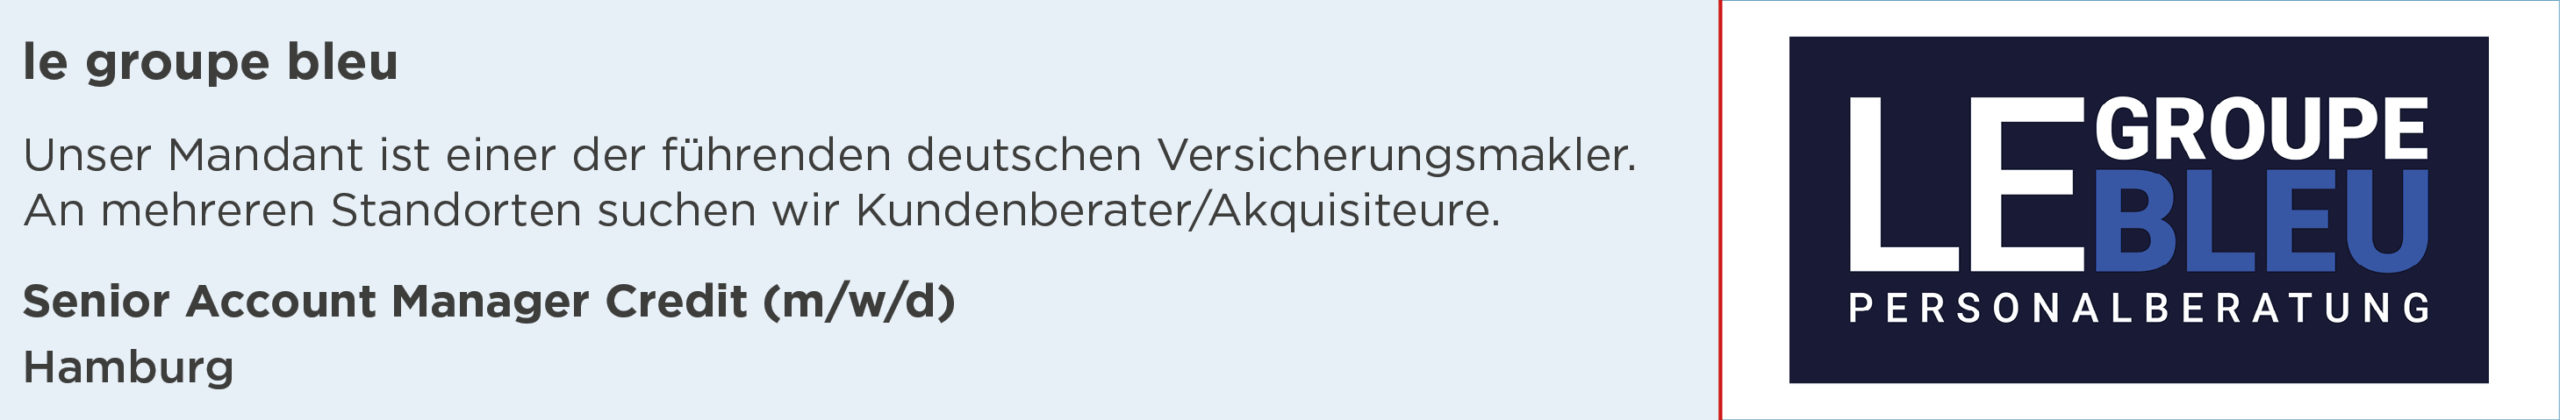 le groupe bleu, stellenanzeige, senior, account, manager, credit, hamburg